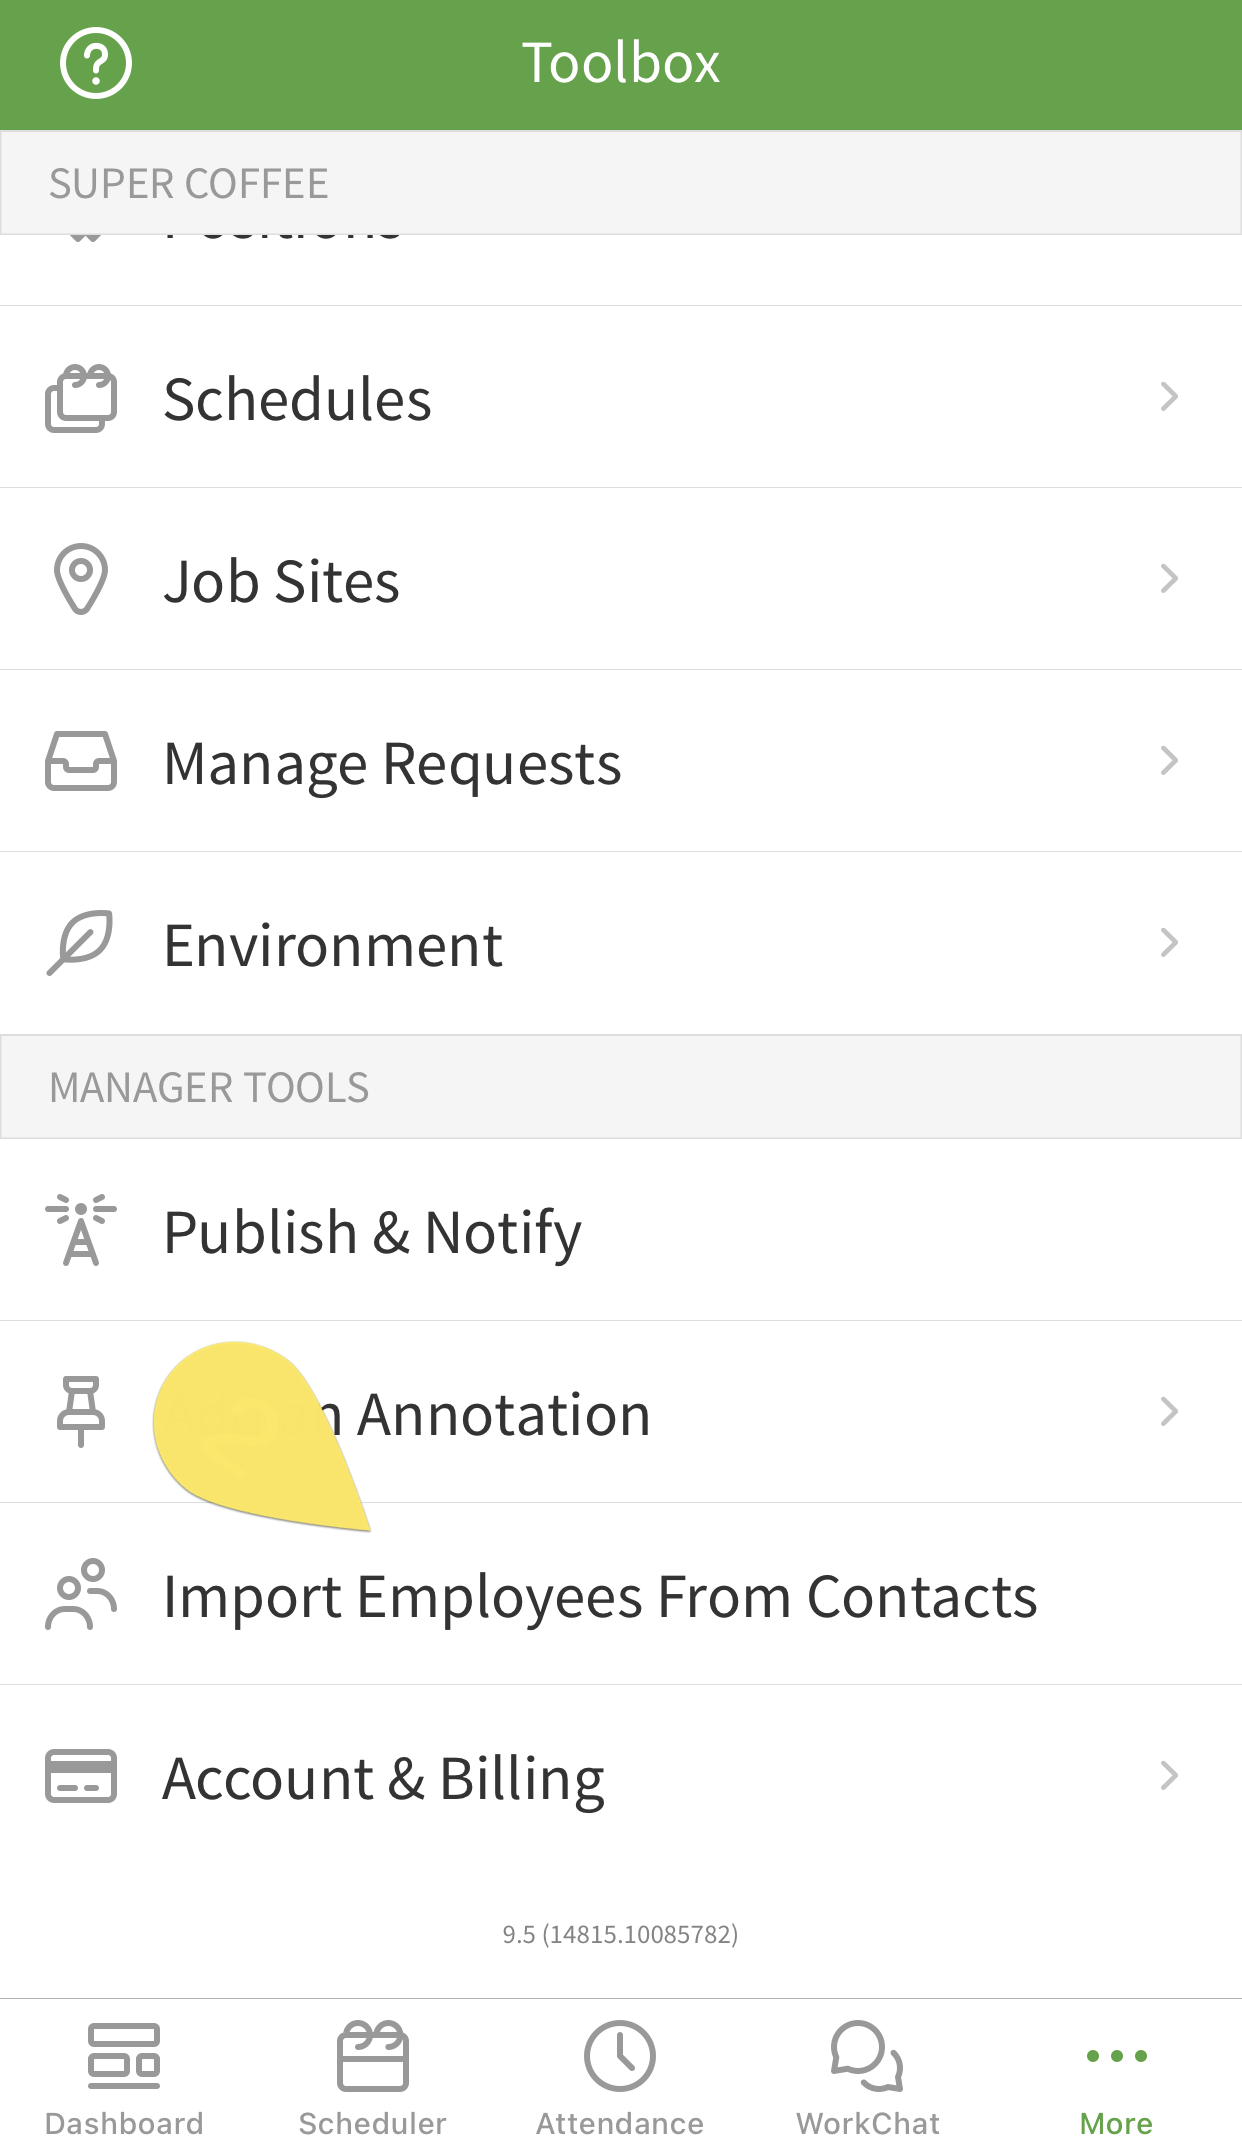 import employees from contacts button